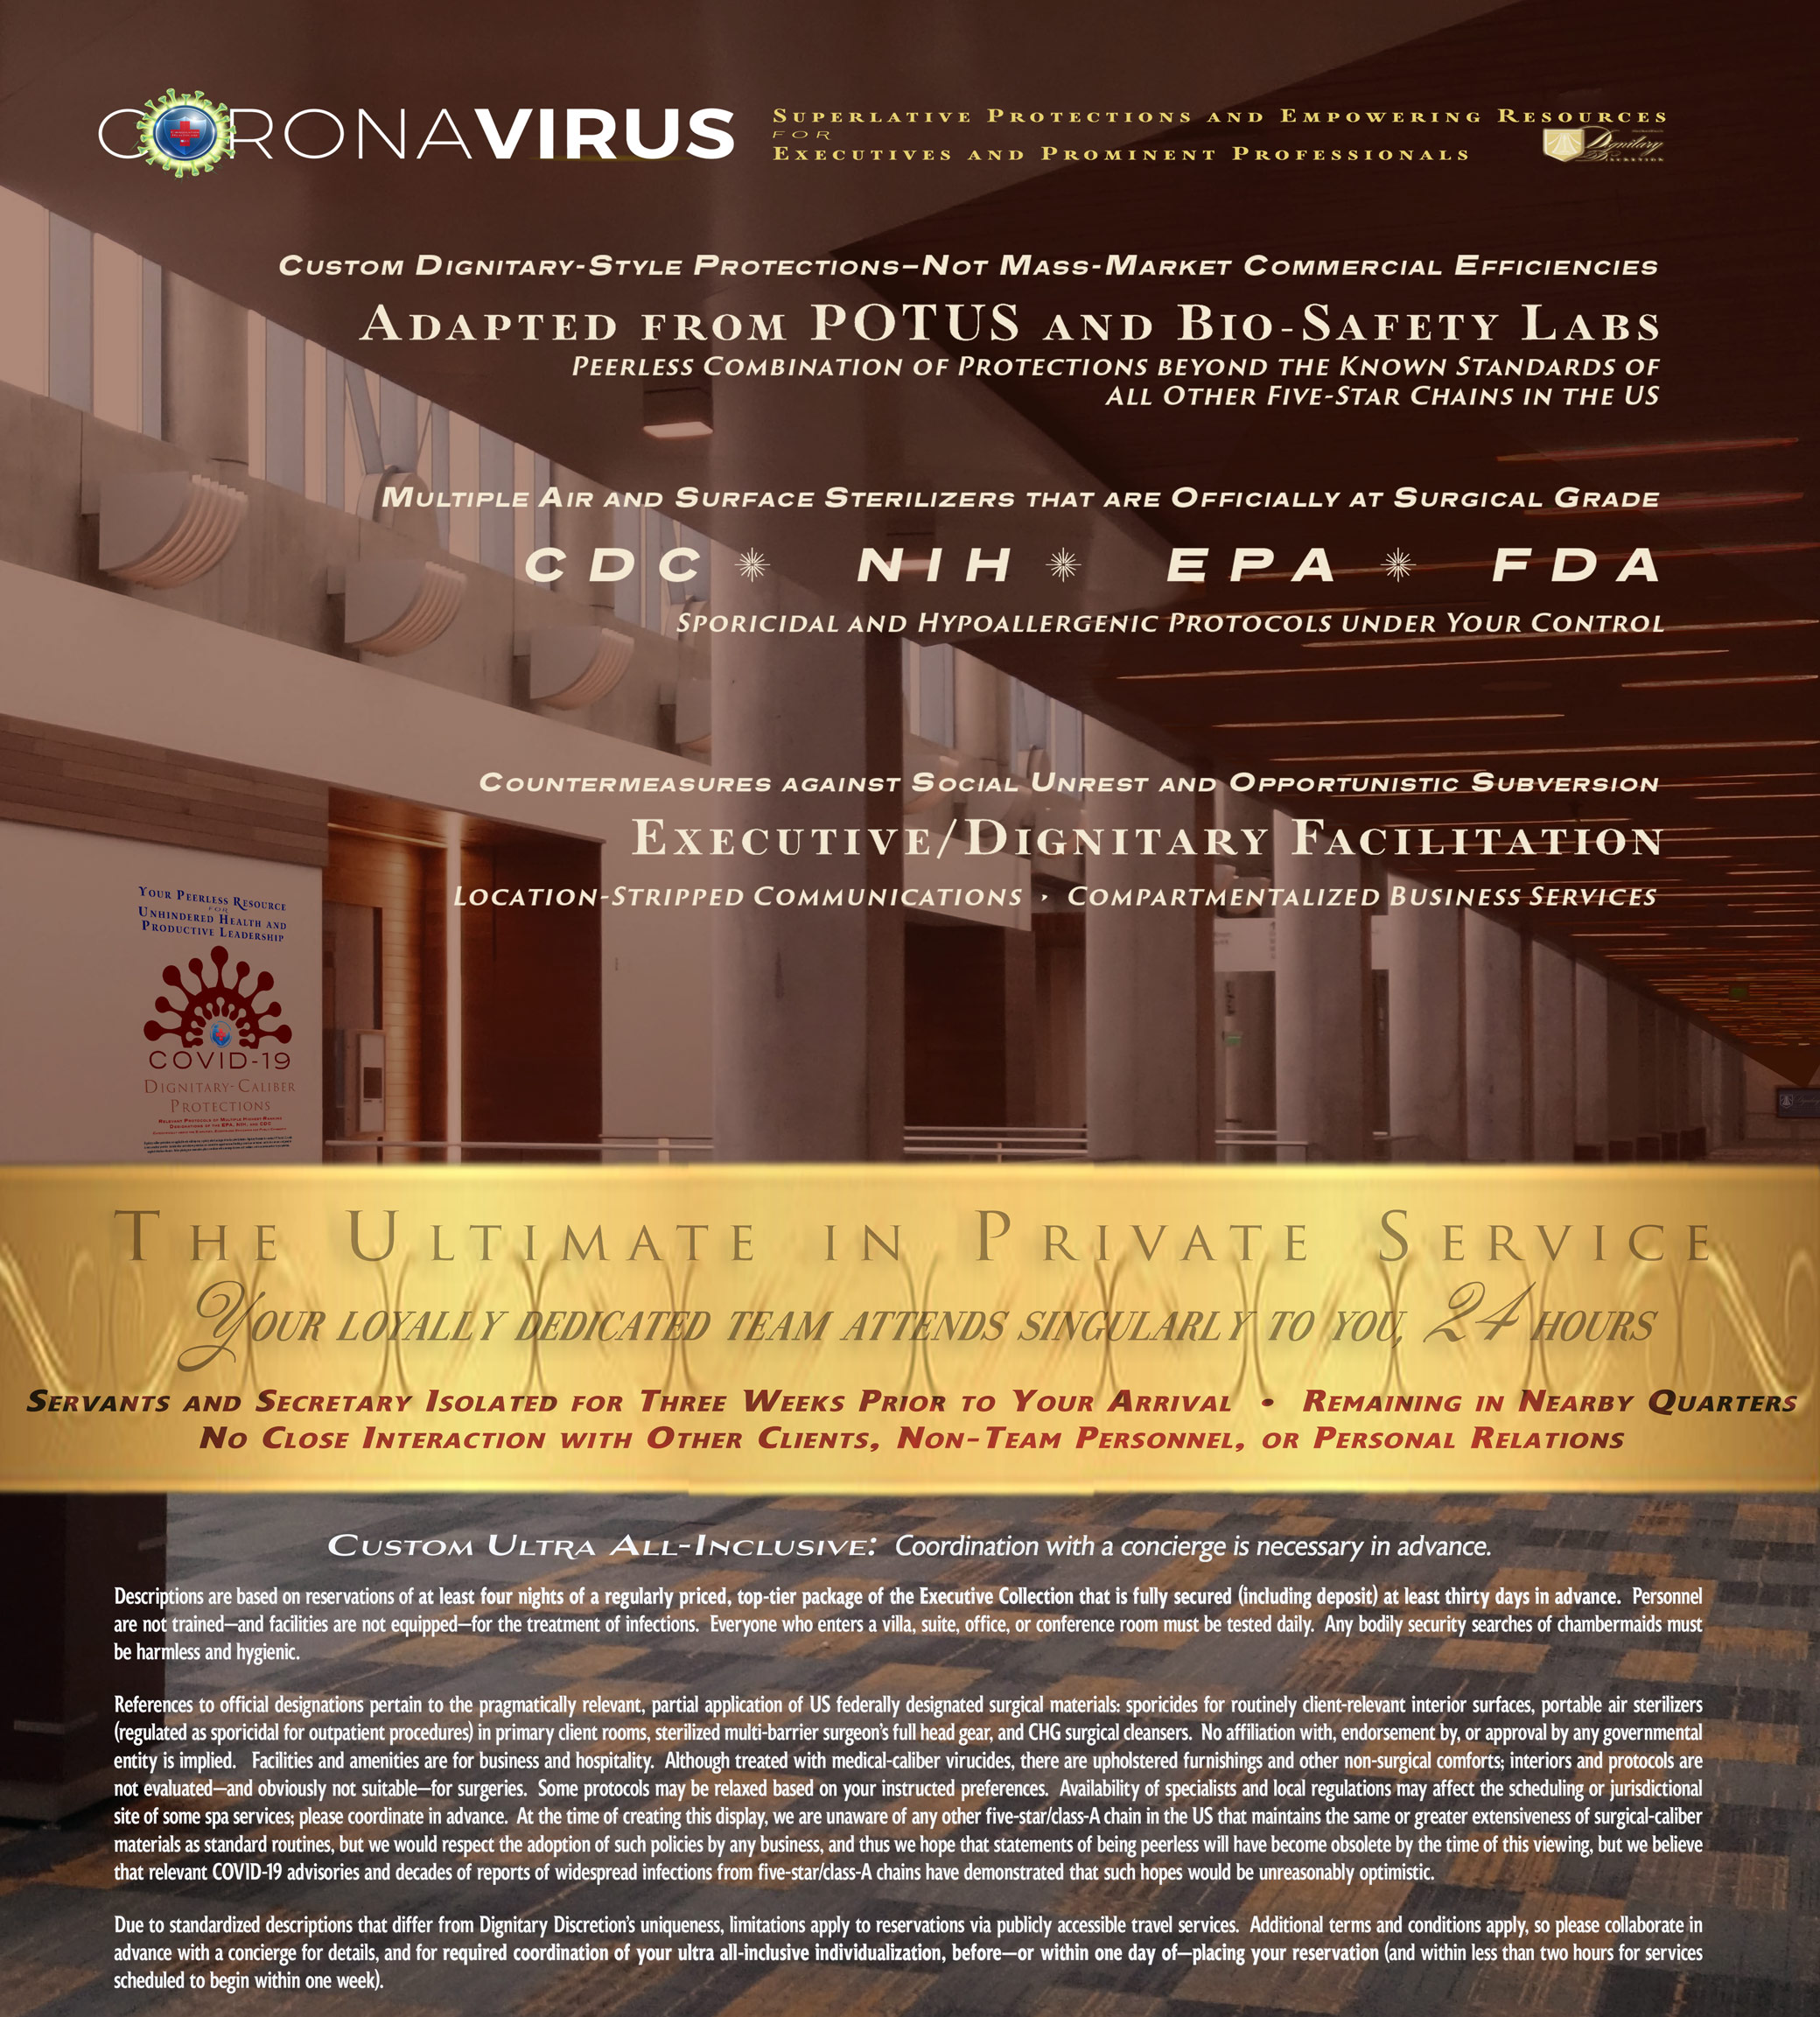 Five Star Hotel San Francisco Bay Area Isolation from COVID19 Coronavirus